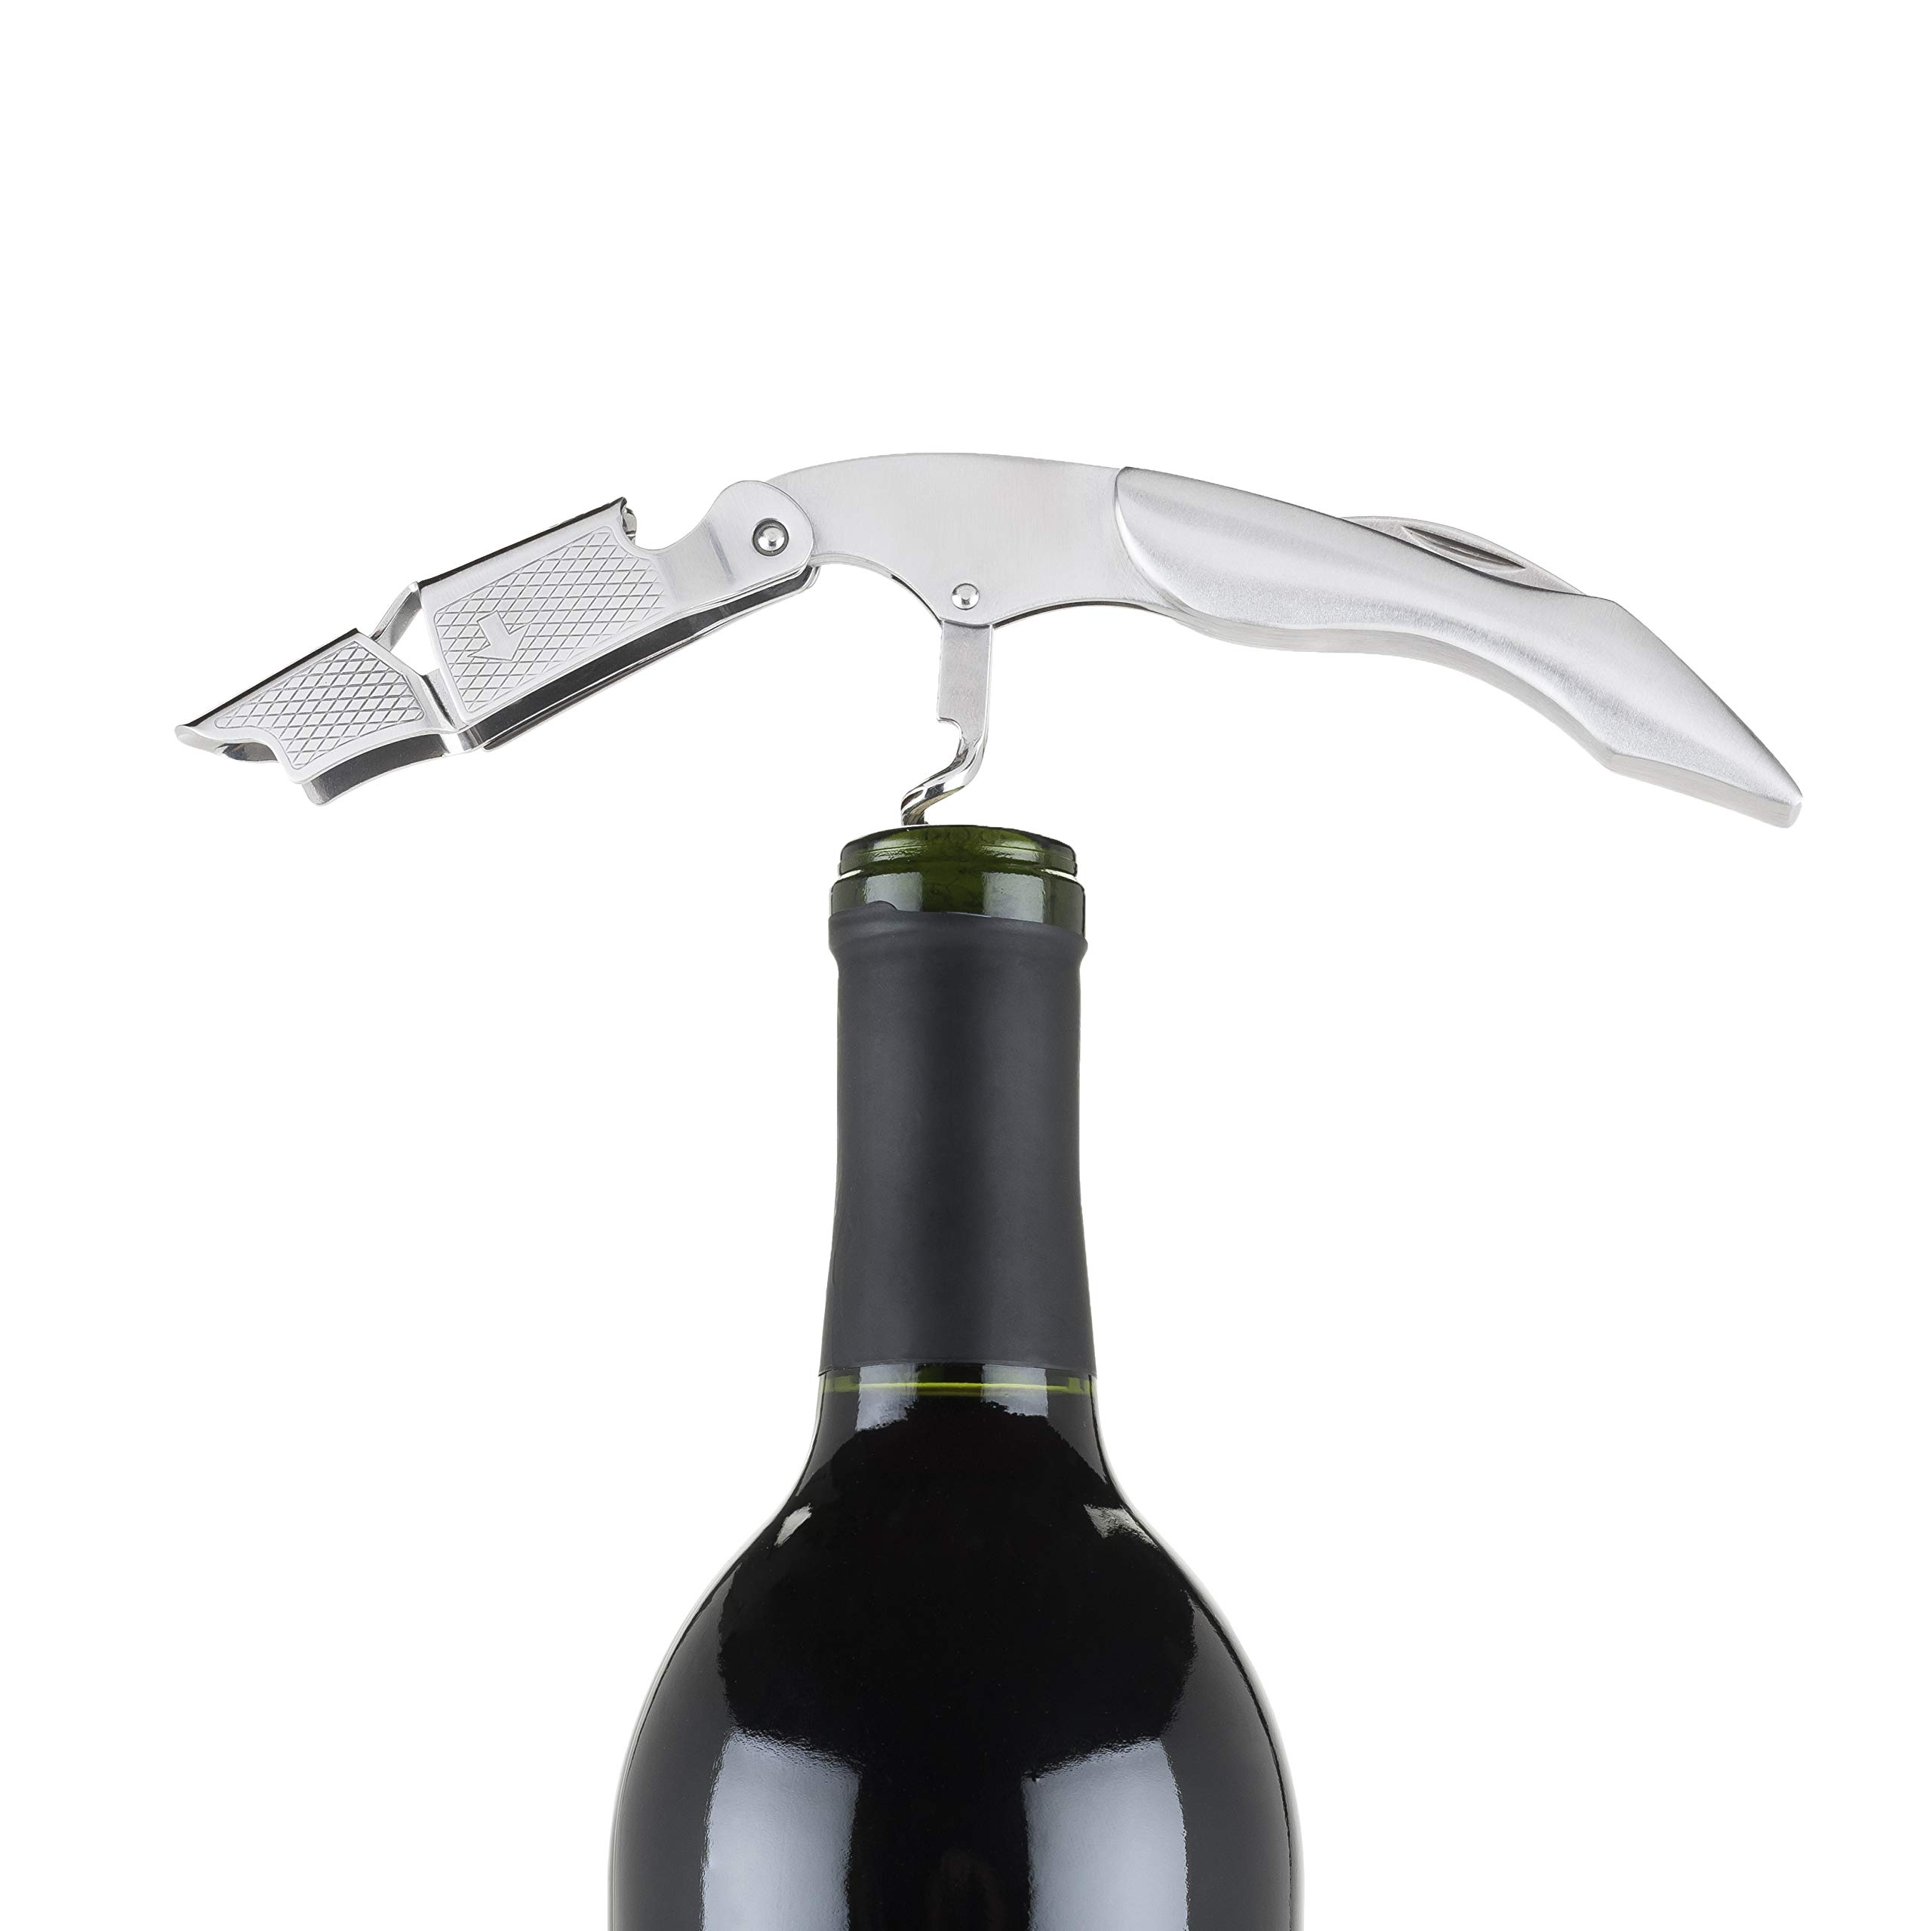 Corkscrew Wine, Straight Edge Foil Cutter Waiters Pulltap Corkscrews (Sold by Case, Pack of 12)